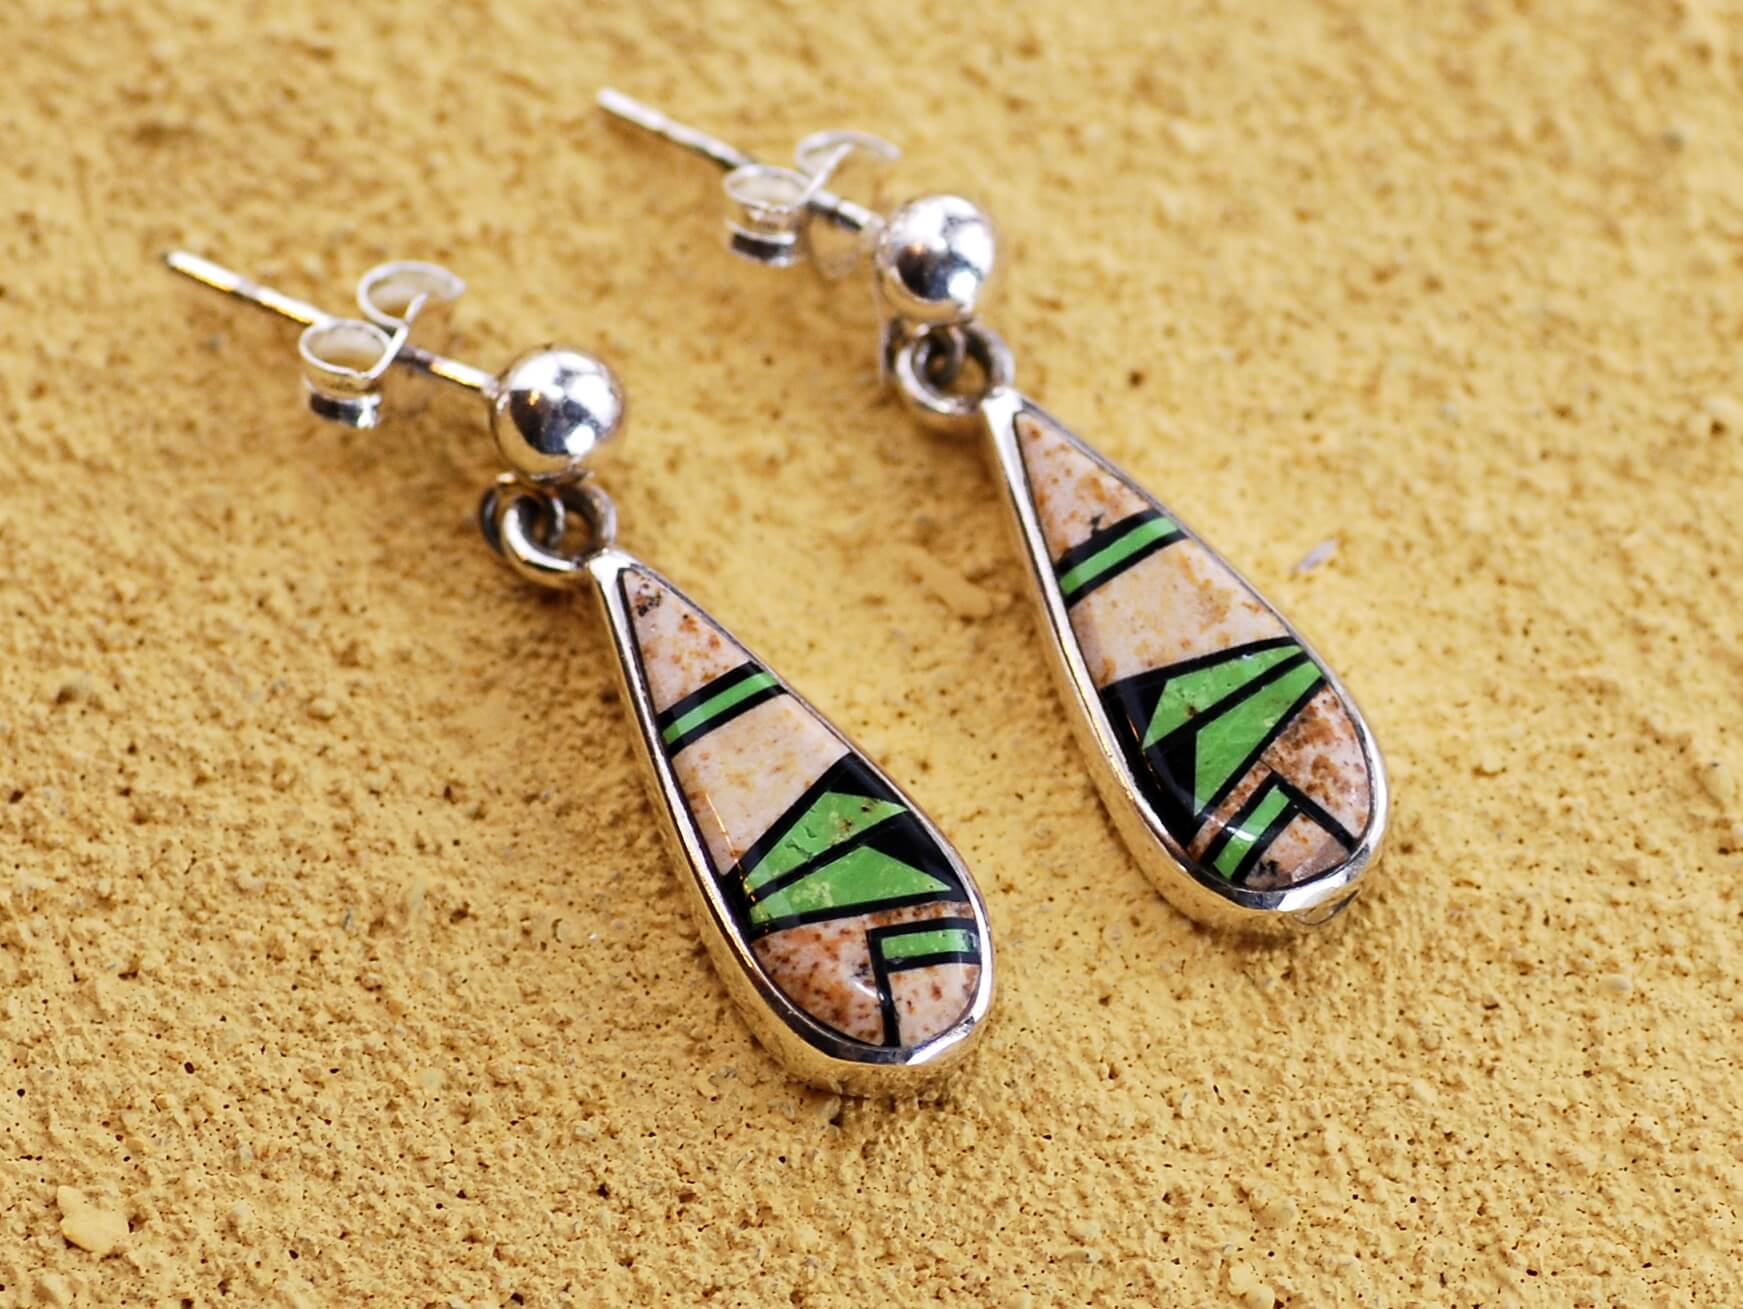 Image shows Jasper and turquoise inlay earrings by Rick Tolino